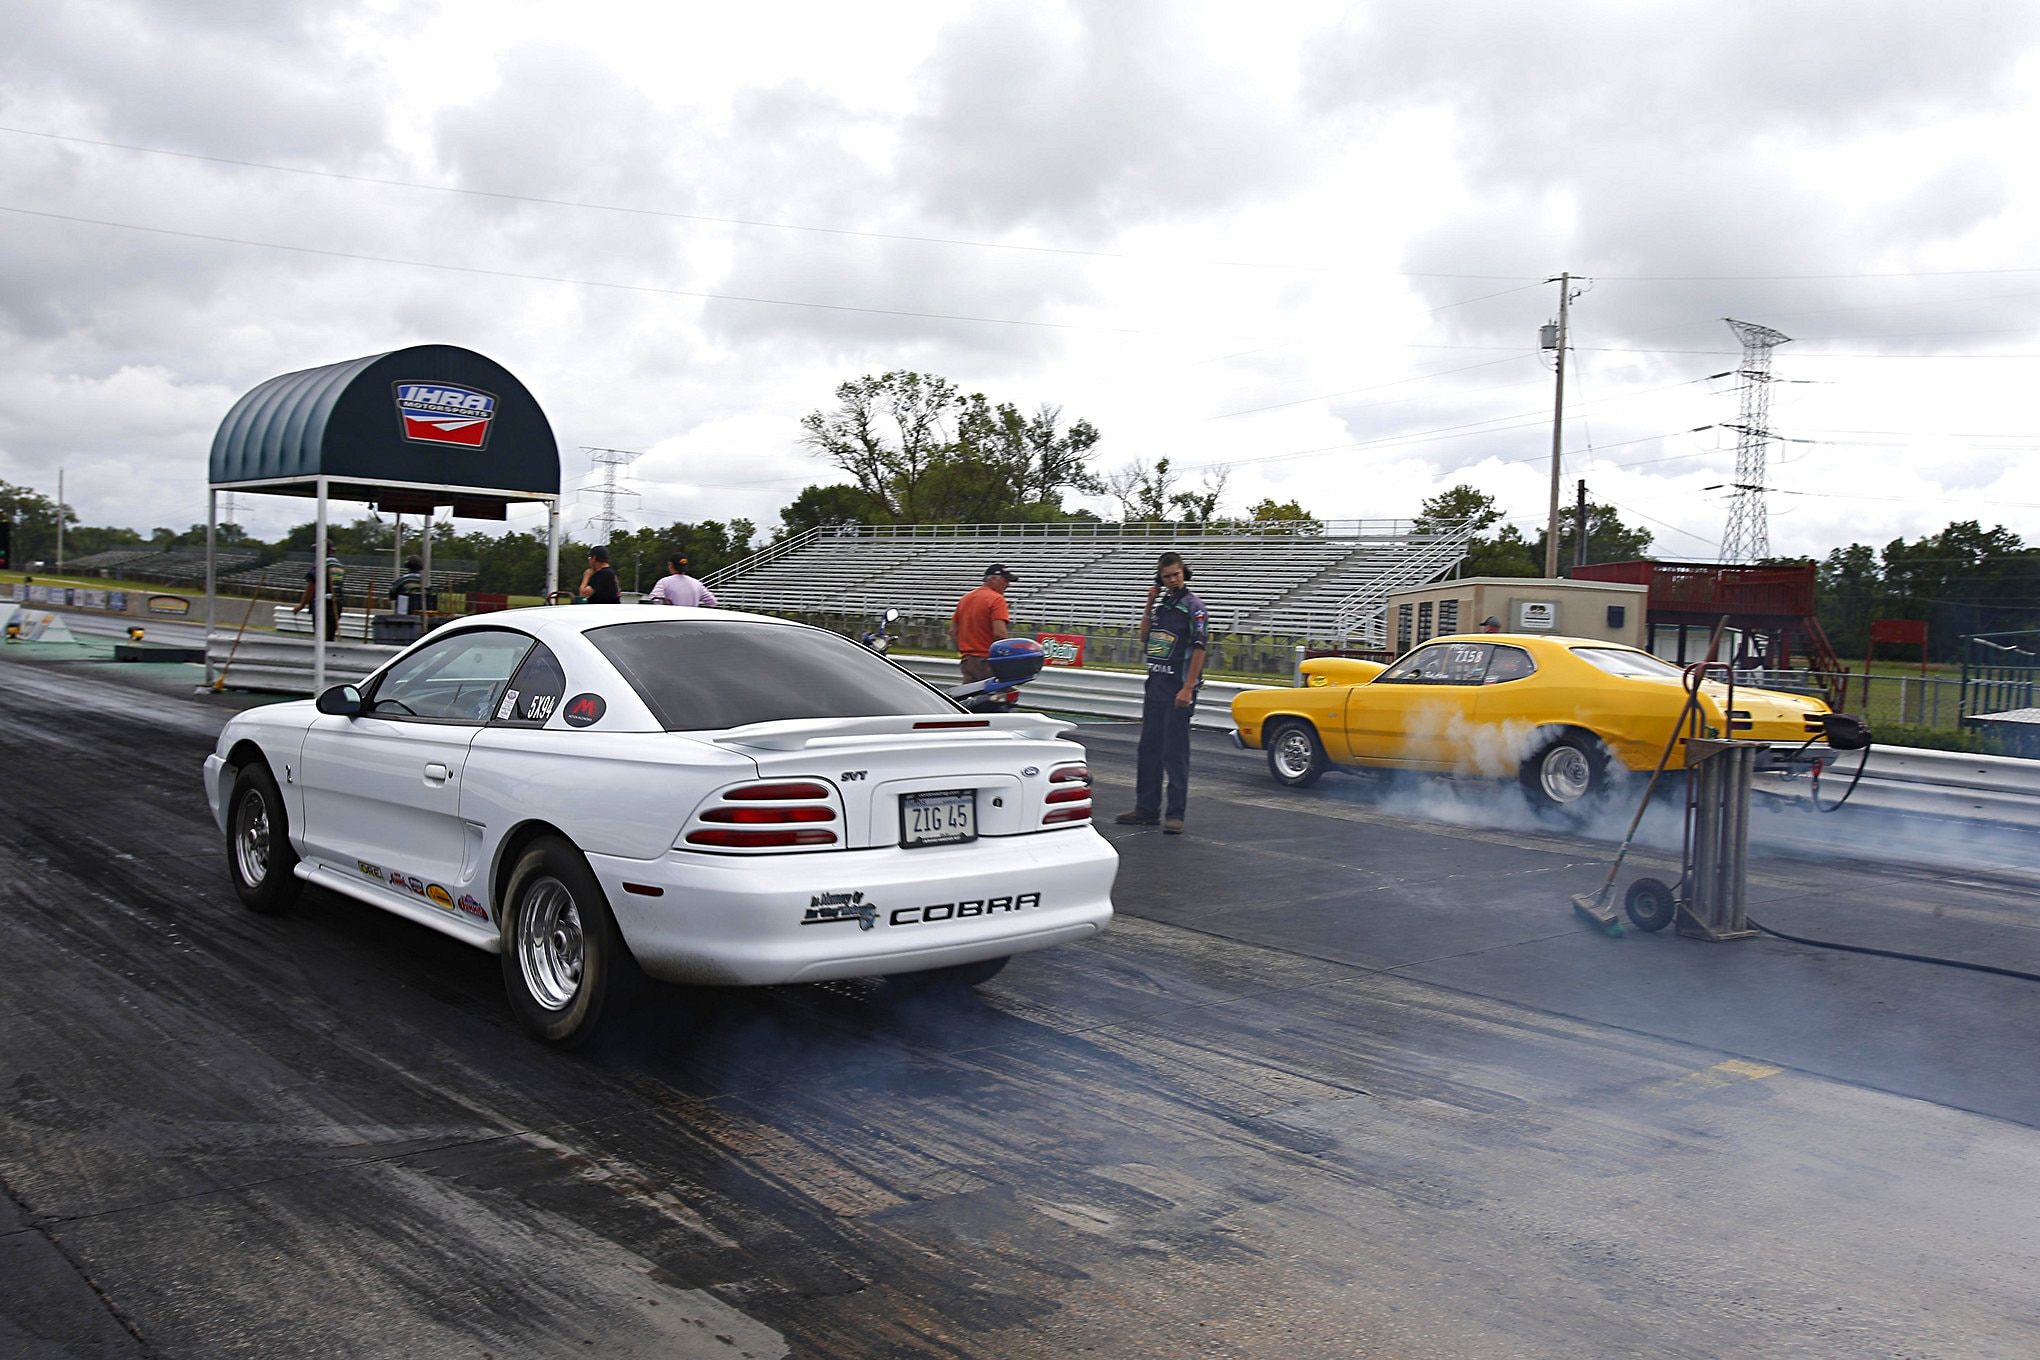 2016 Ford vs. Mopar: Battle at Cordova International Raceway